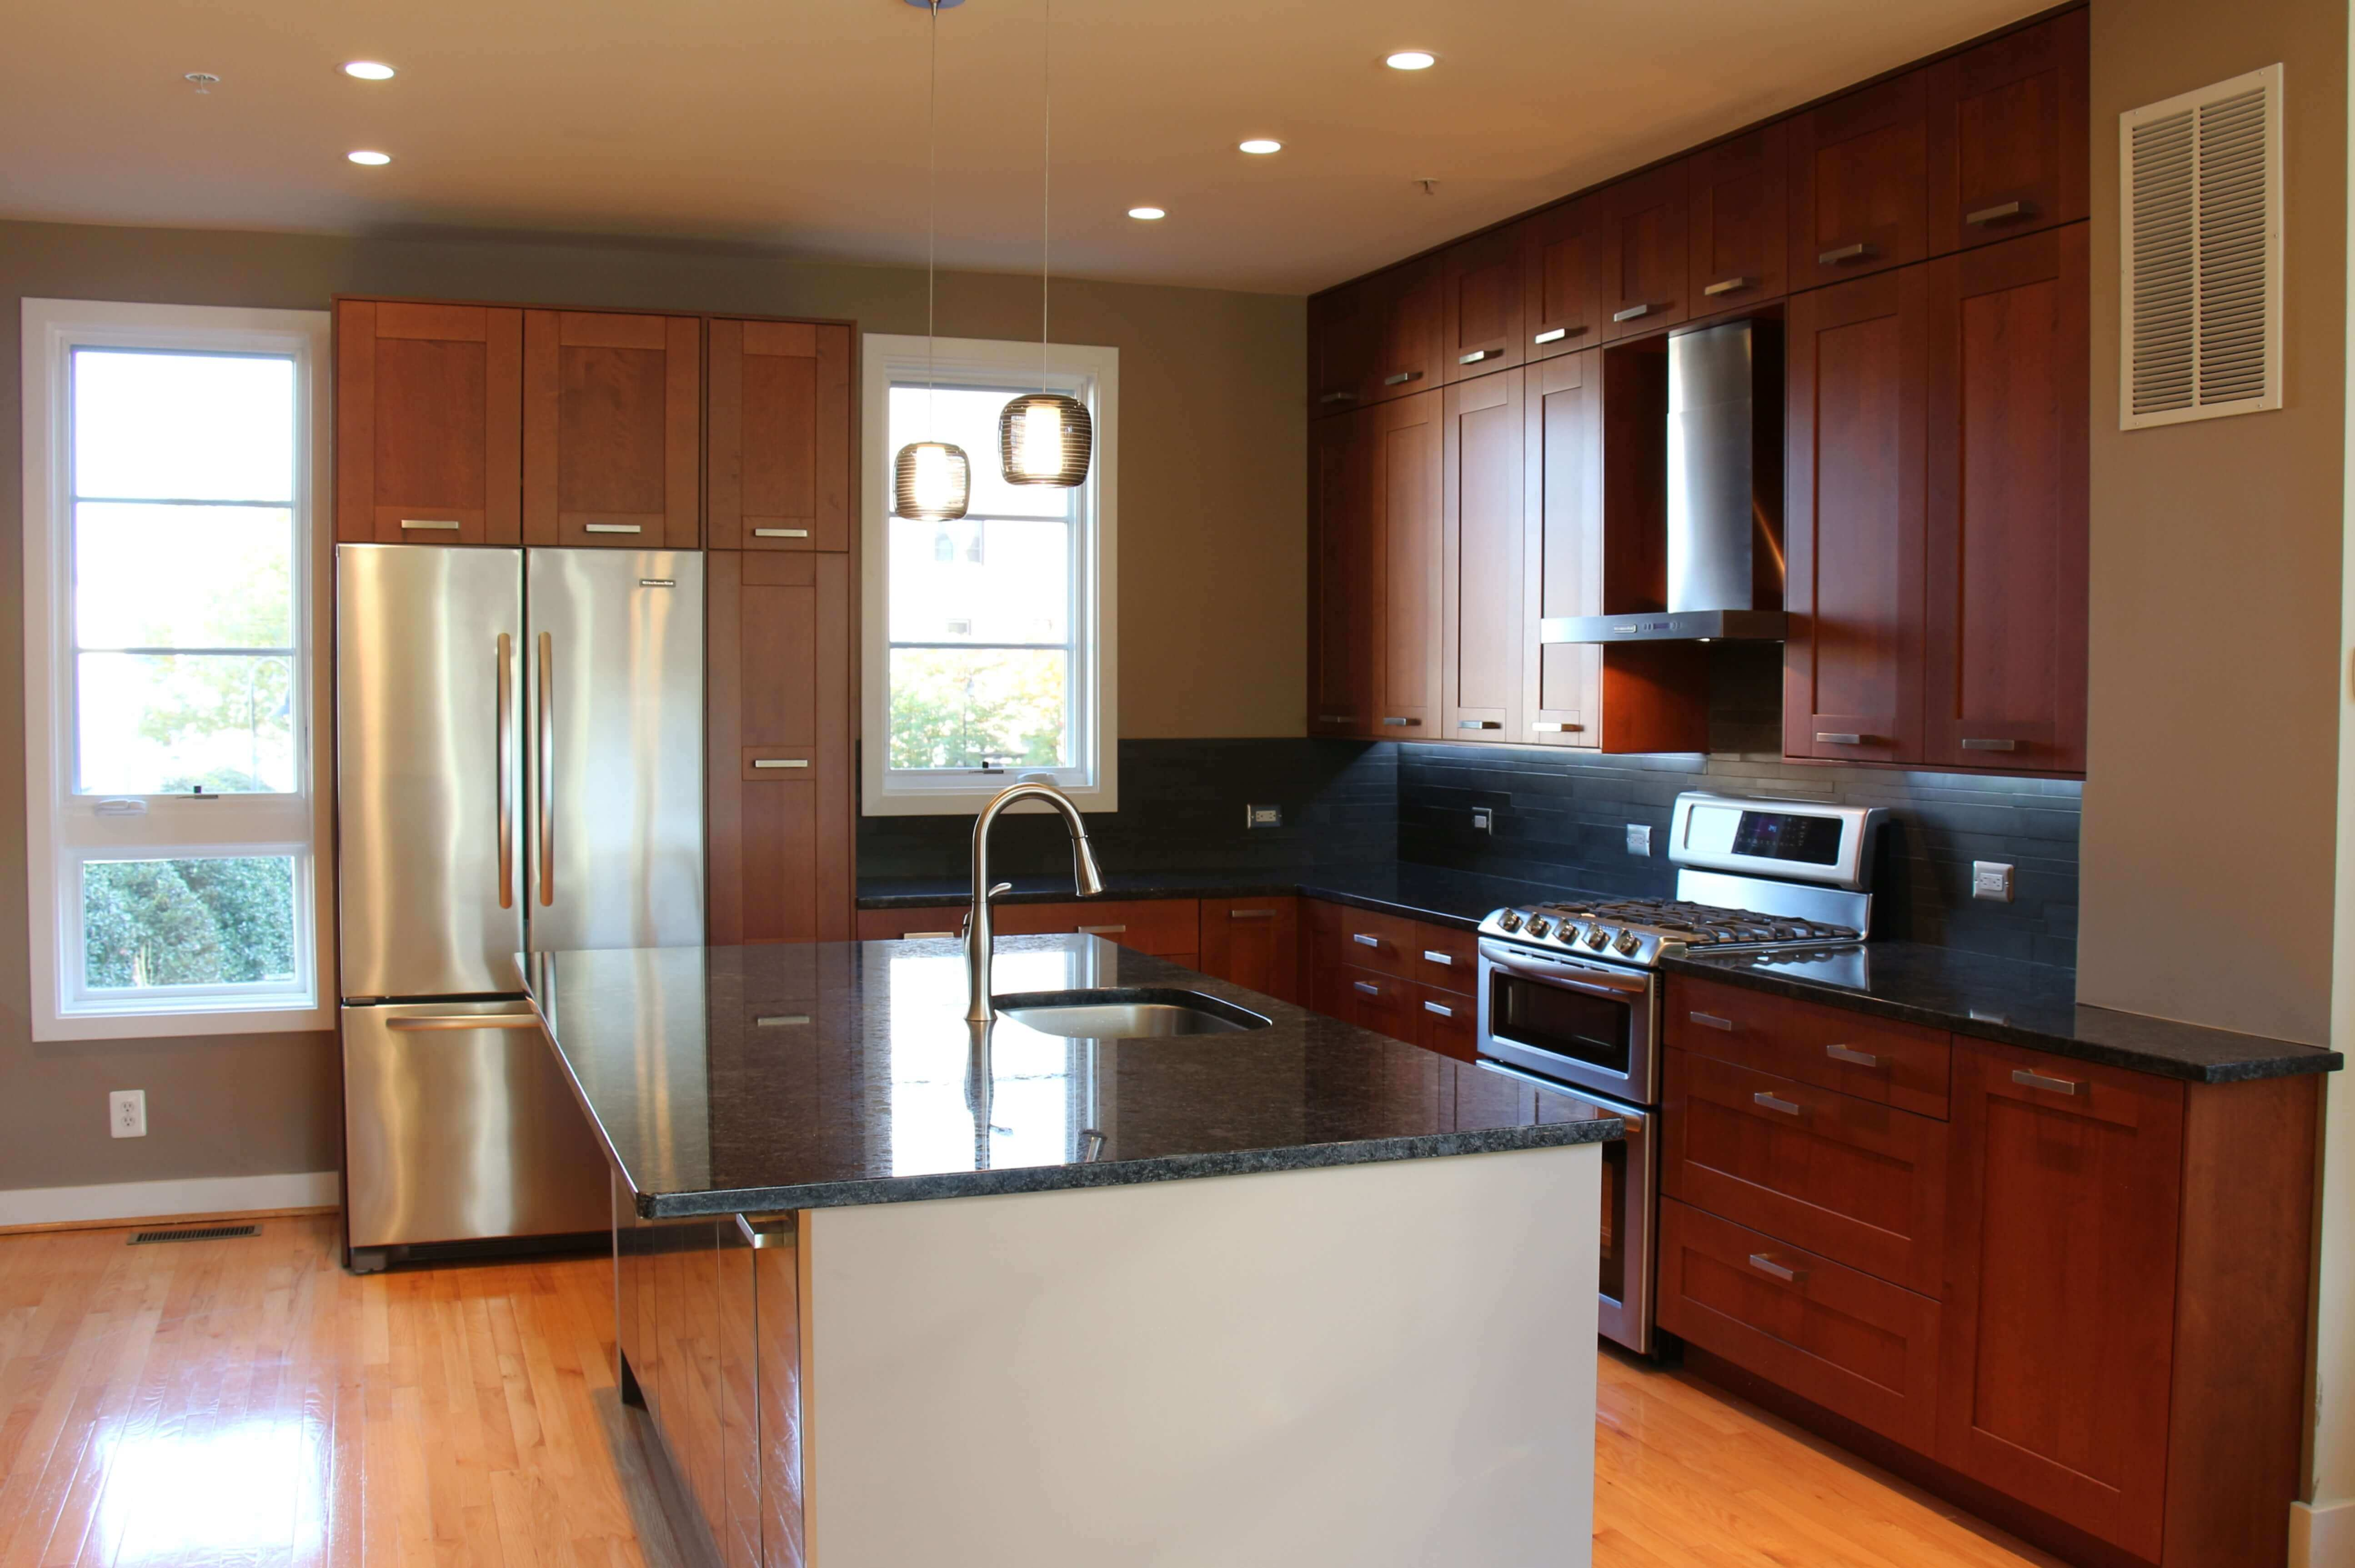 Ikea Kitchen Contractor Ikea Kitchen Remodel Maryland Virginia Dc